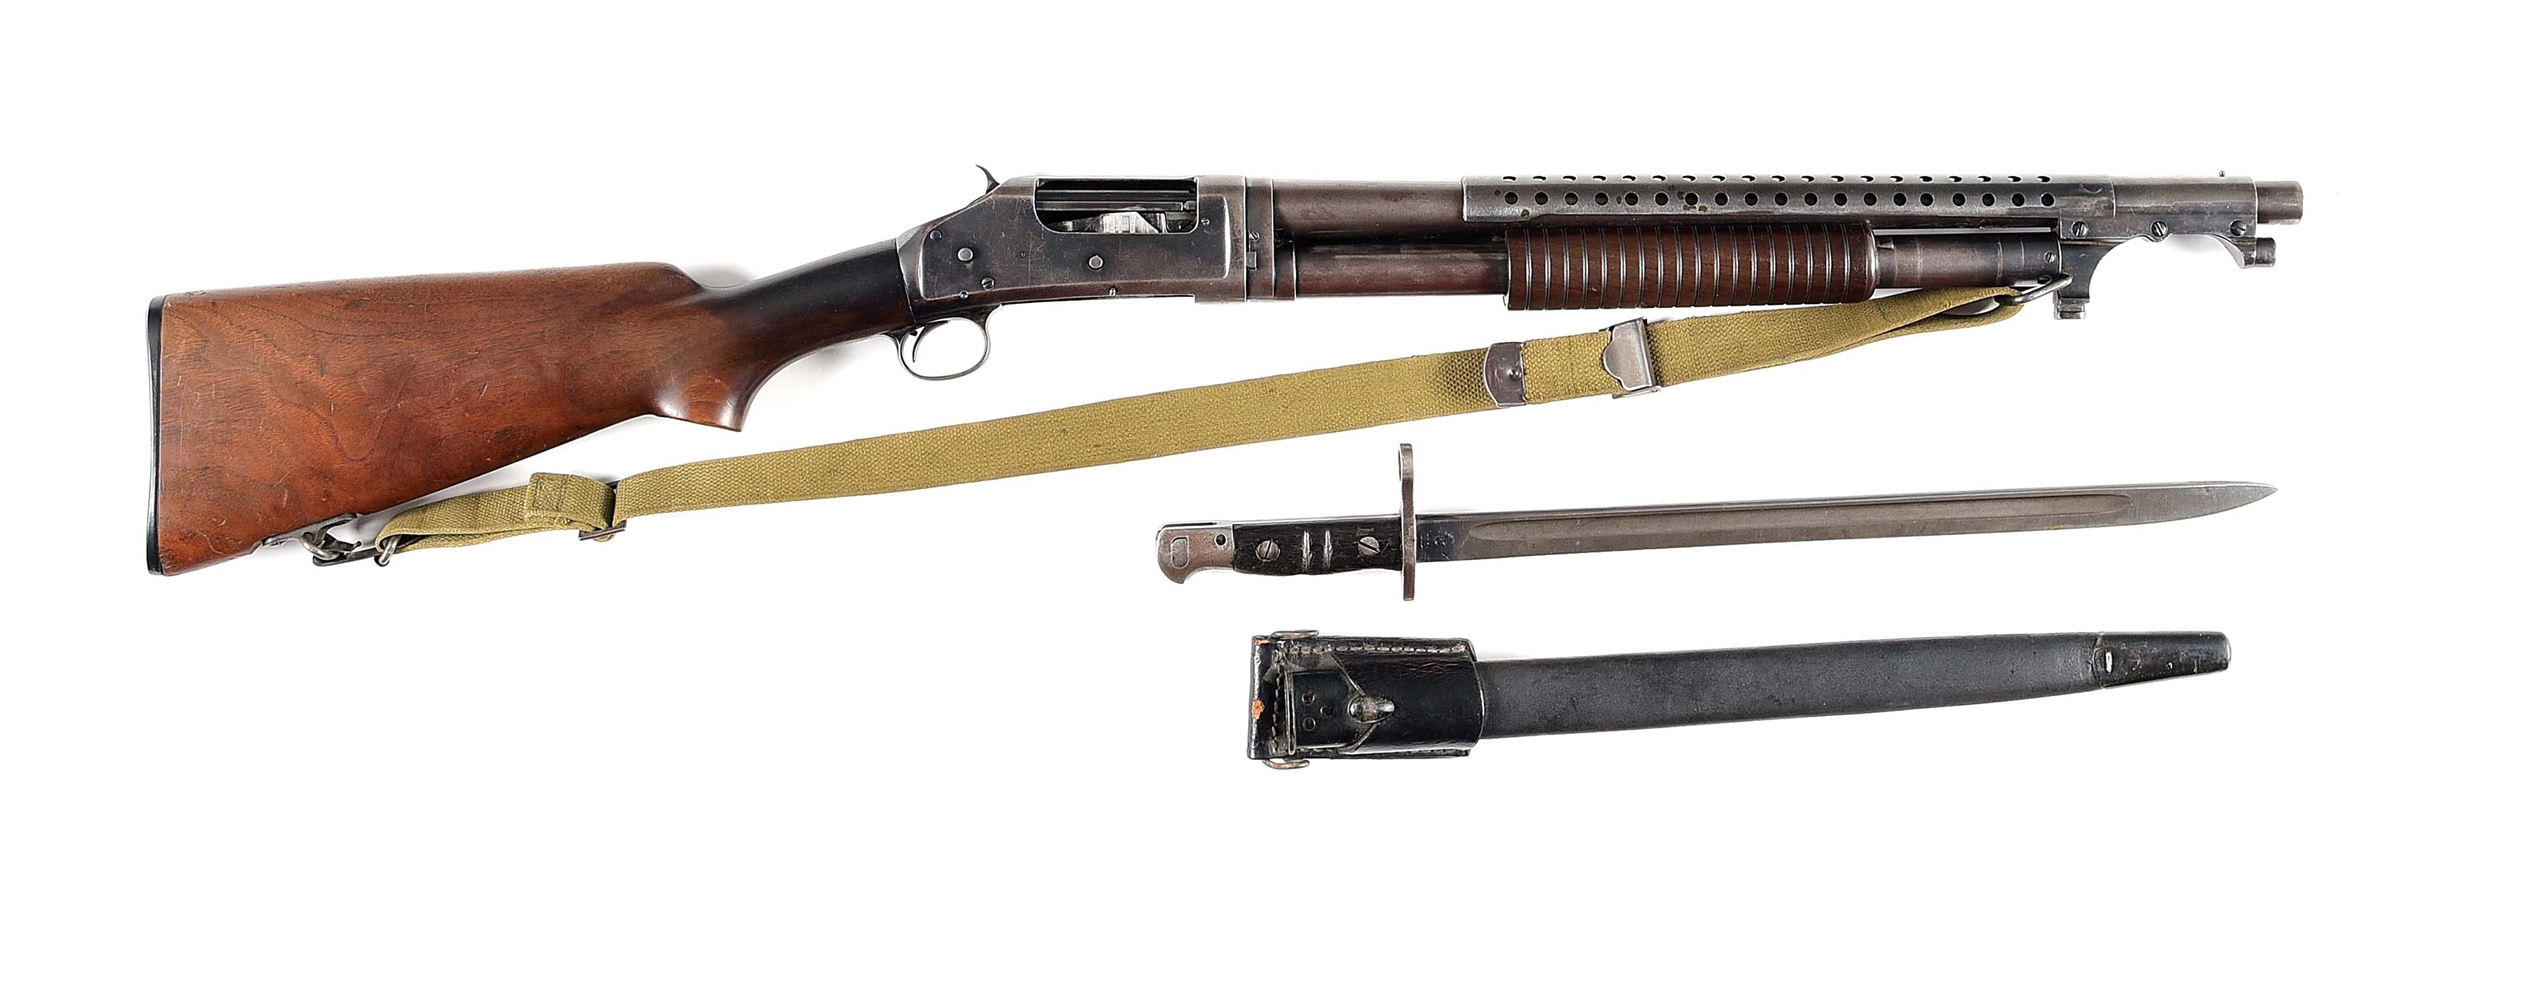 (C) WINCHESTER 1897 TRENCH STYLE SLIDE ACTION SHOTGUN WITH BAYONET.